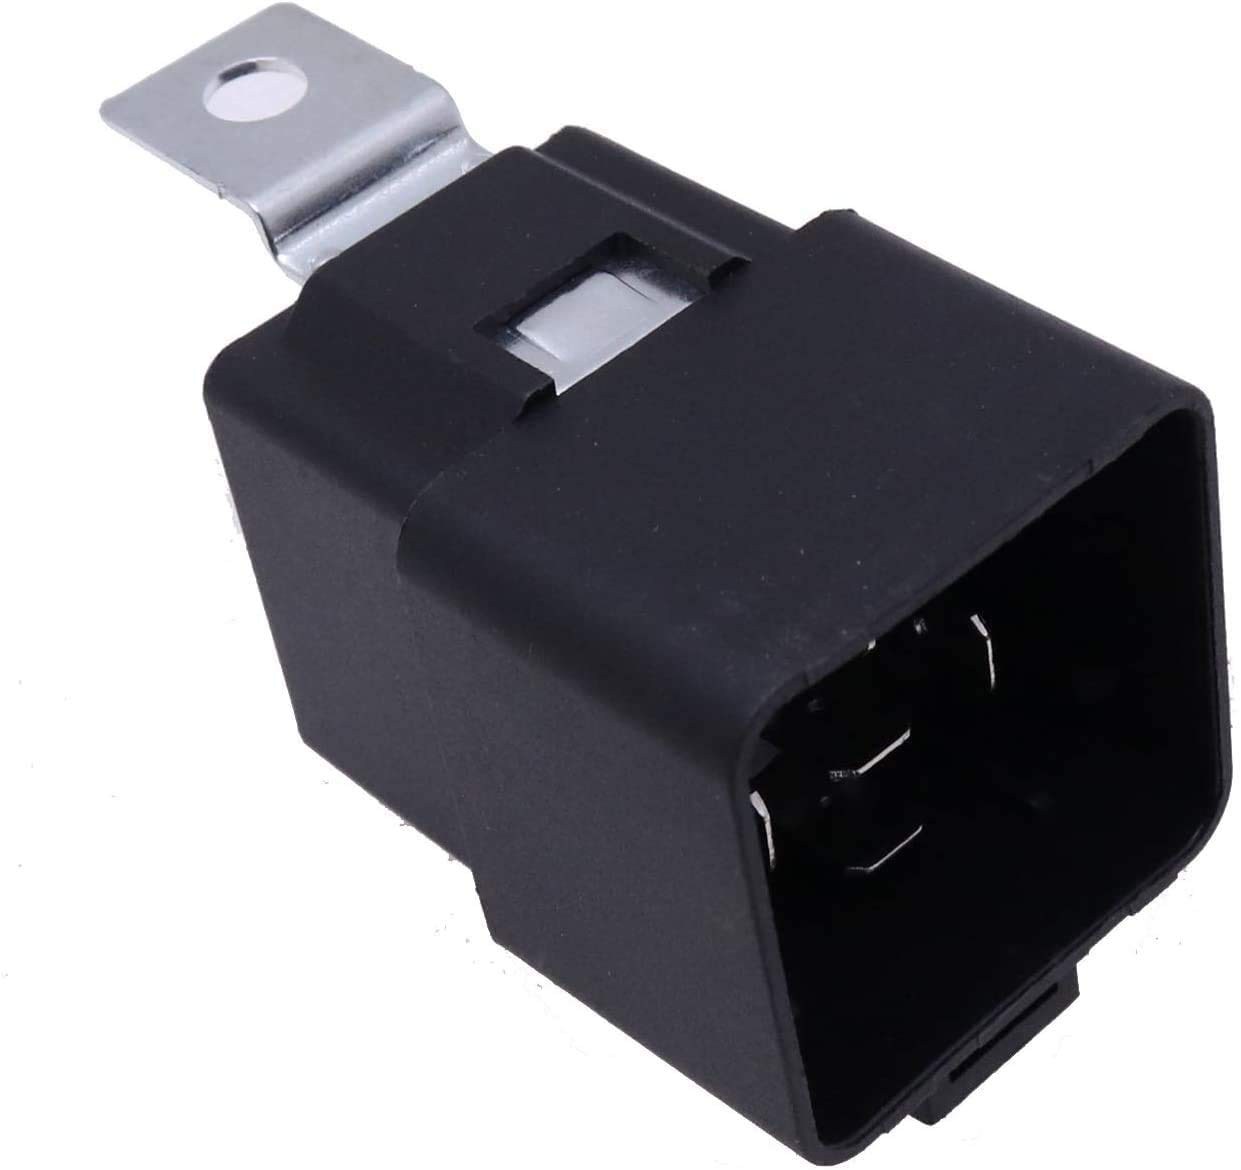 zt truck parts 12V Power Relay San Antonio Sale SALE% OFF Mall 882751A1 Mercury for Fit CM Force